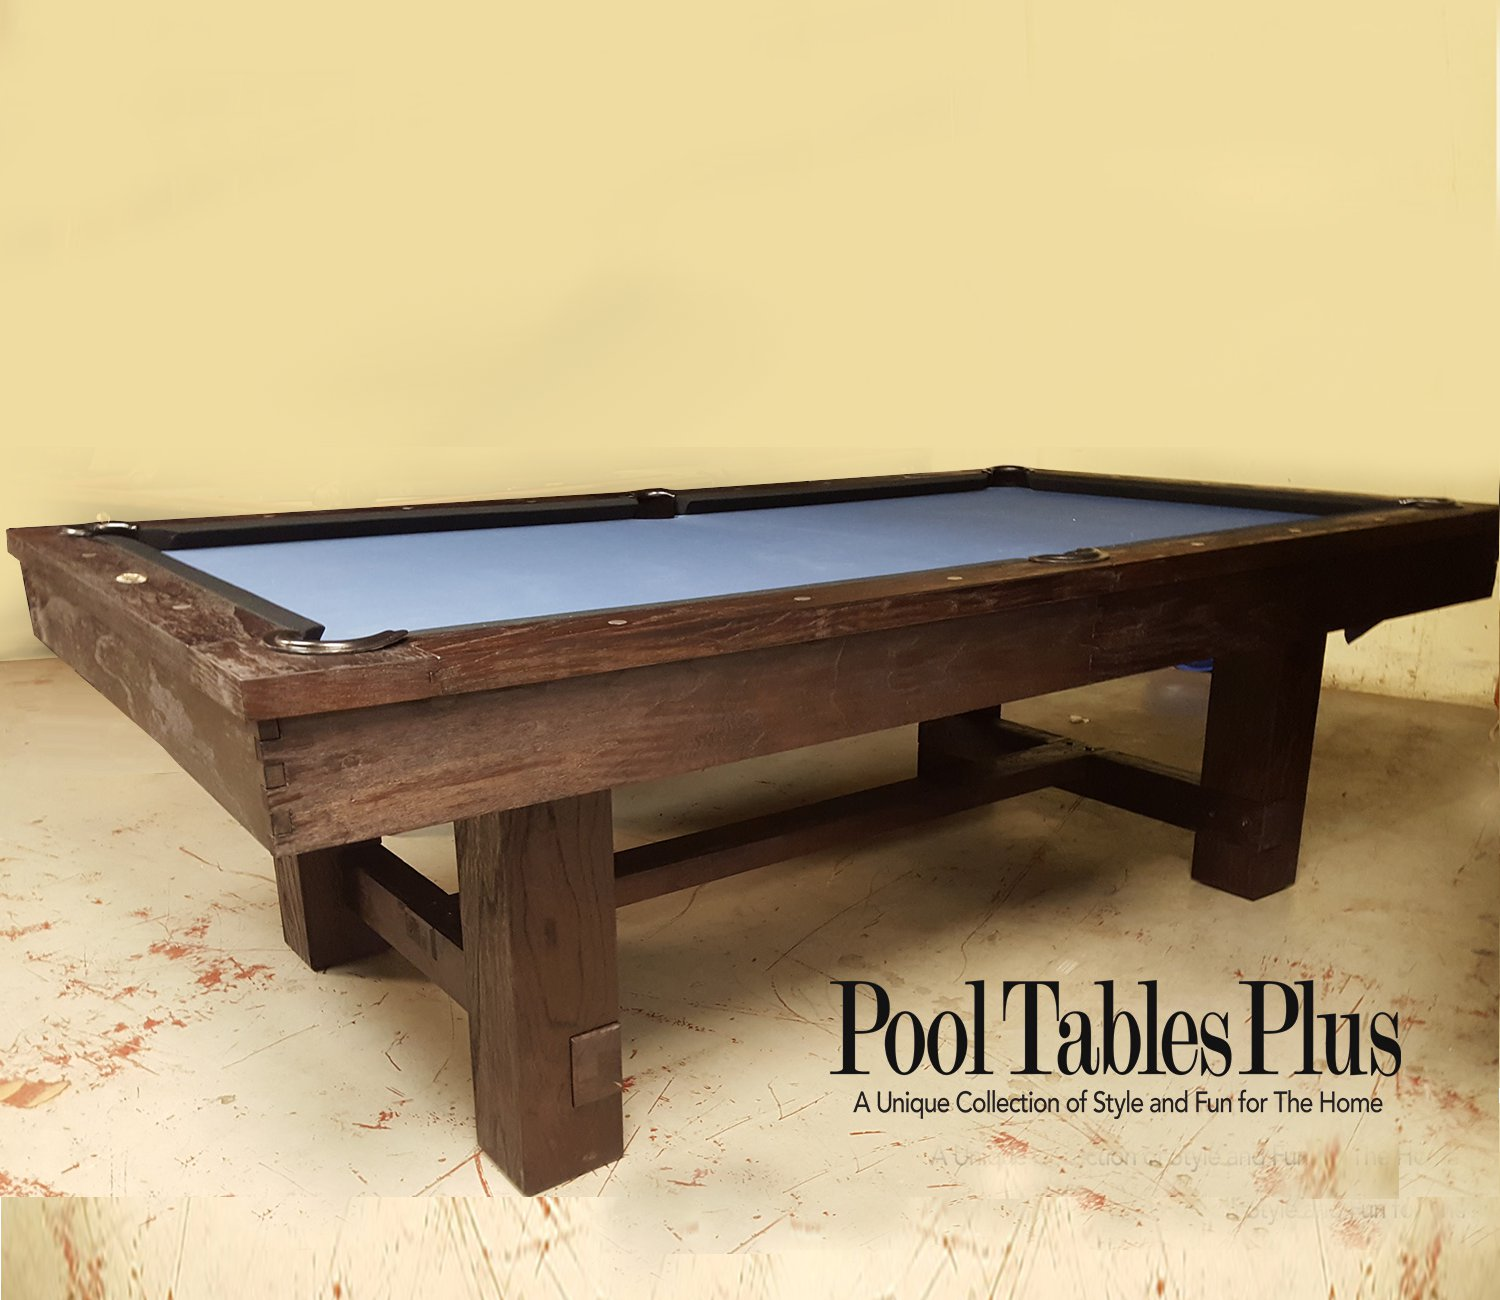 Ramapo Reno Pool Table - Reno pool table